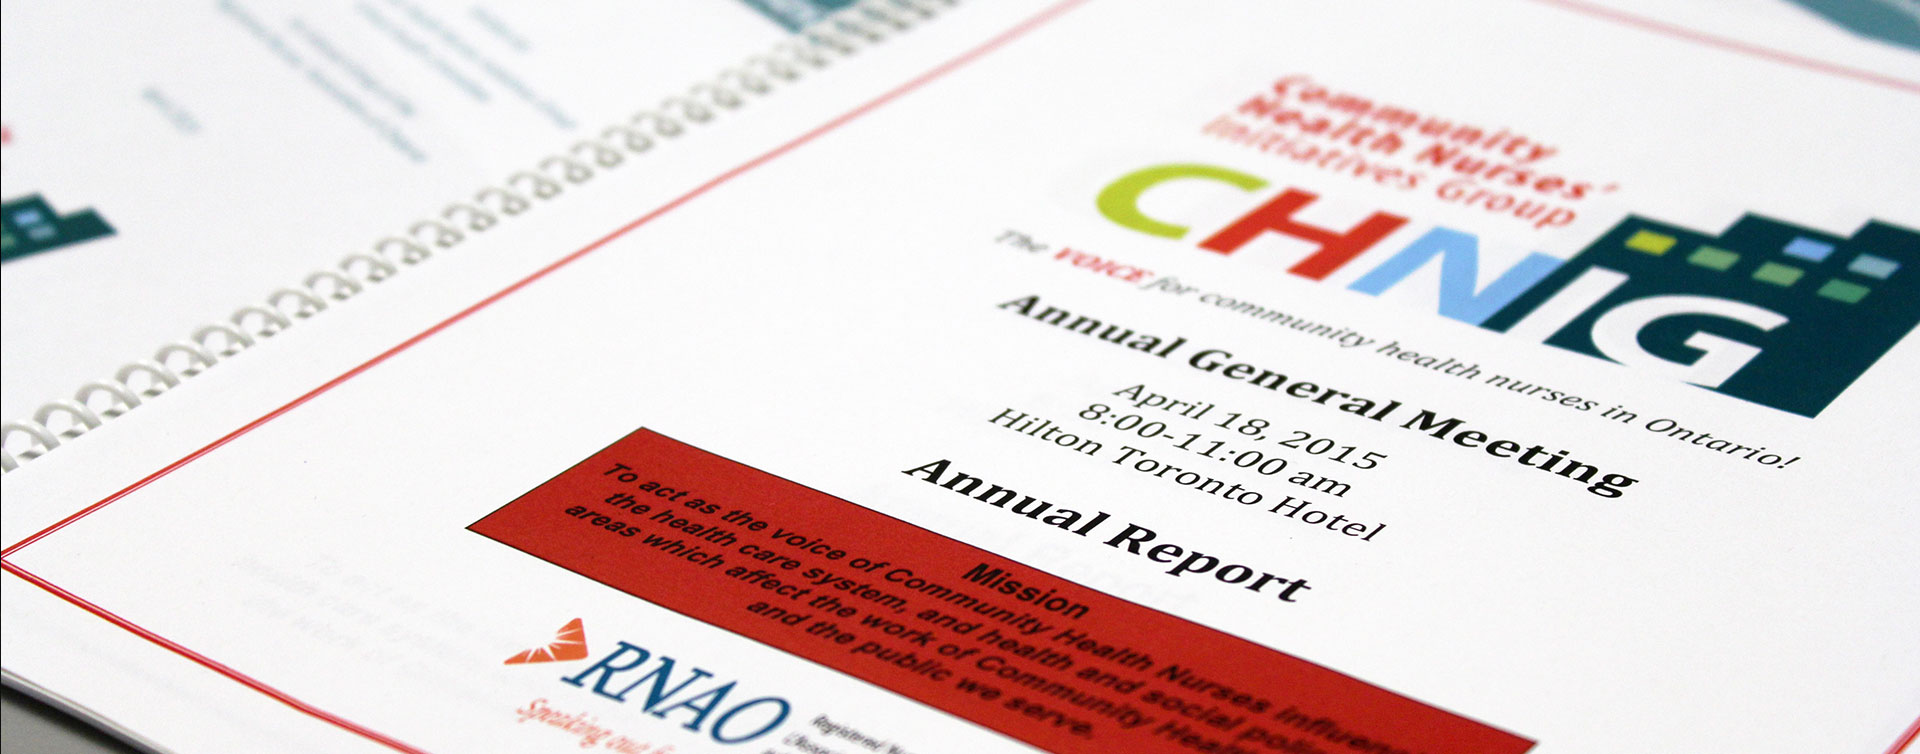 policy papers reports community health nurses initiative group